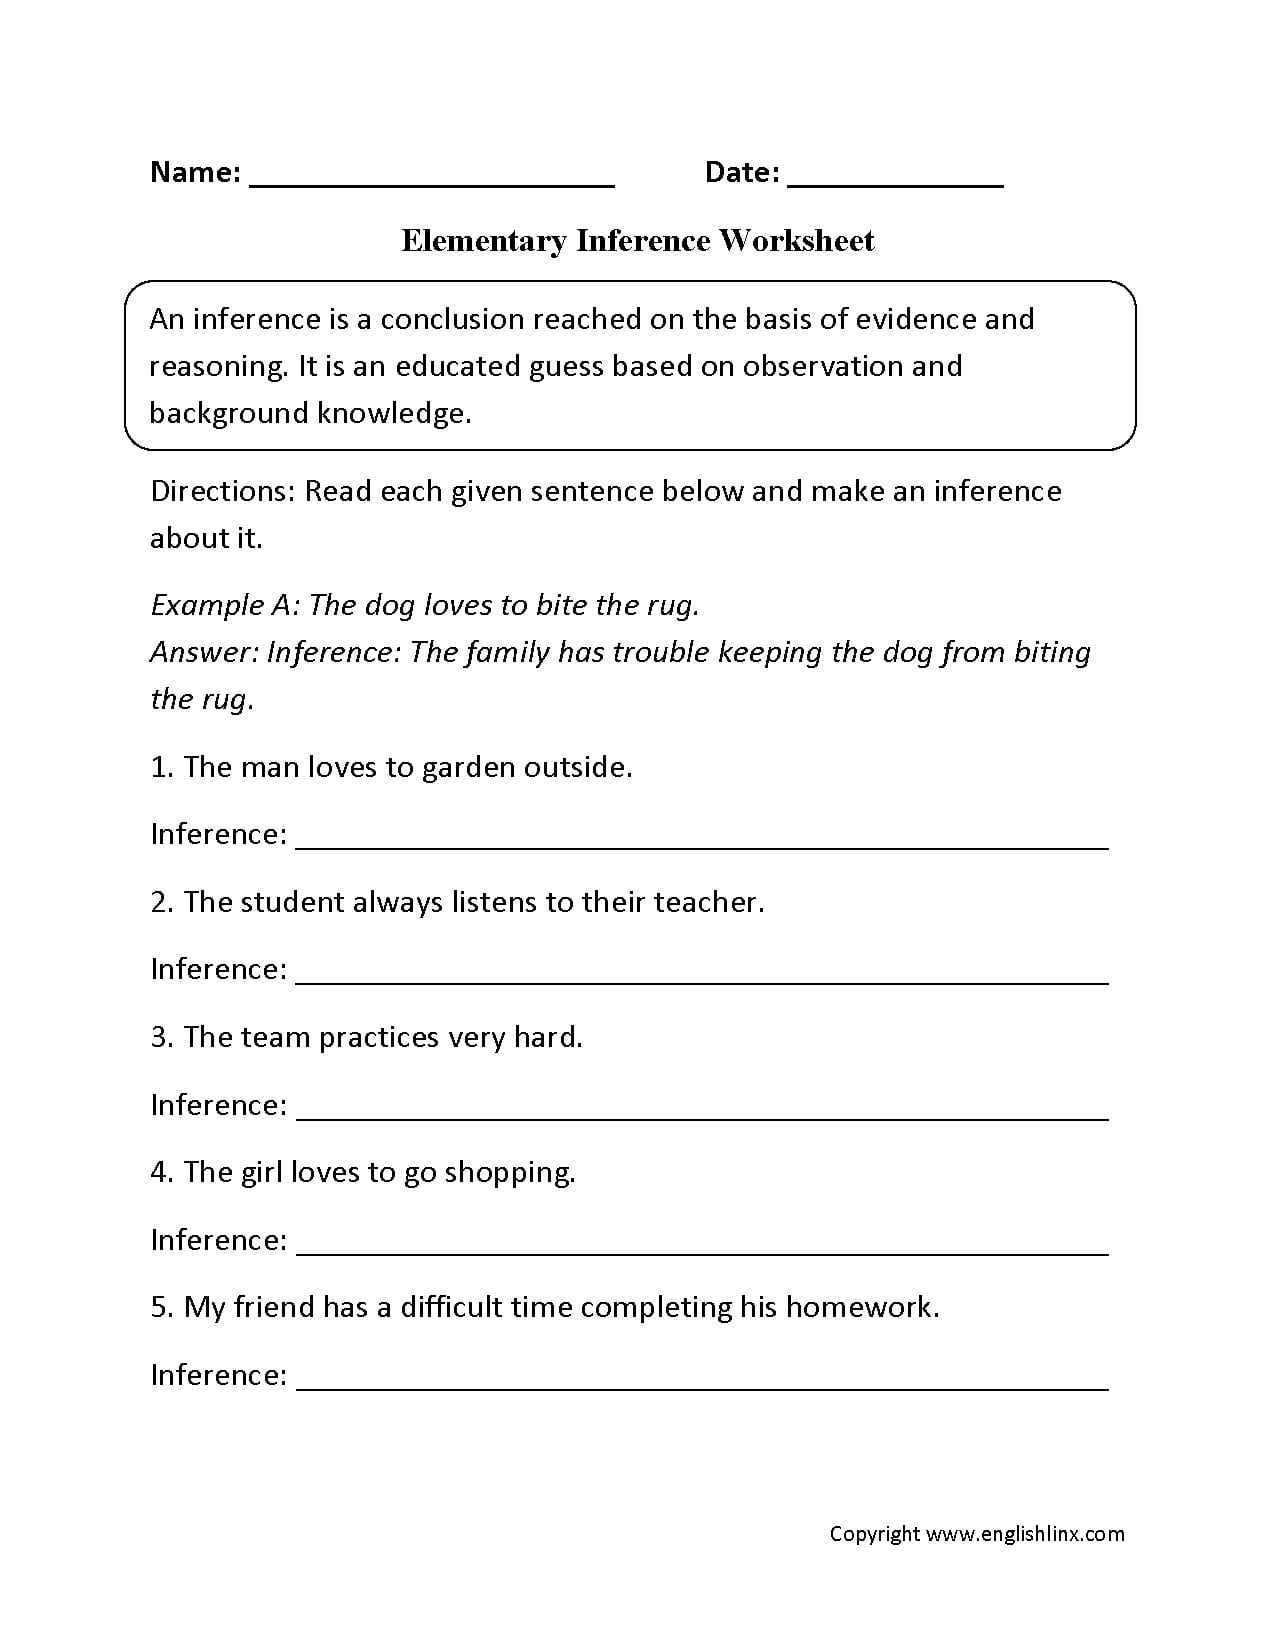 Reading Worksheets  Inference Worksheets As Well As Observation And Inference Worksheet